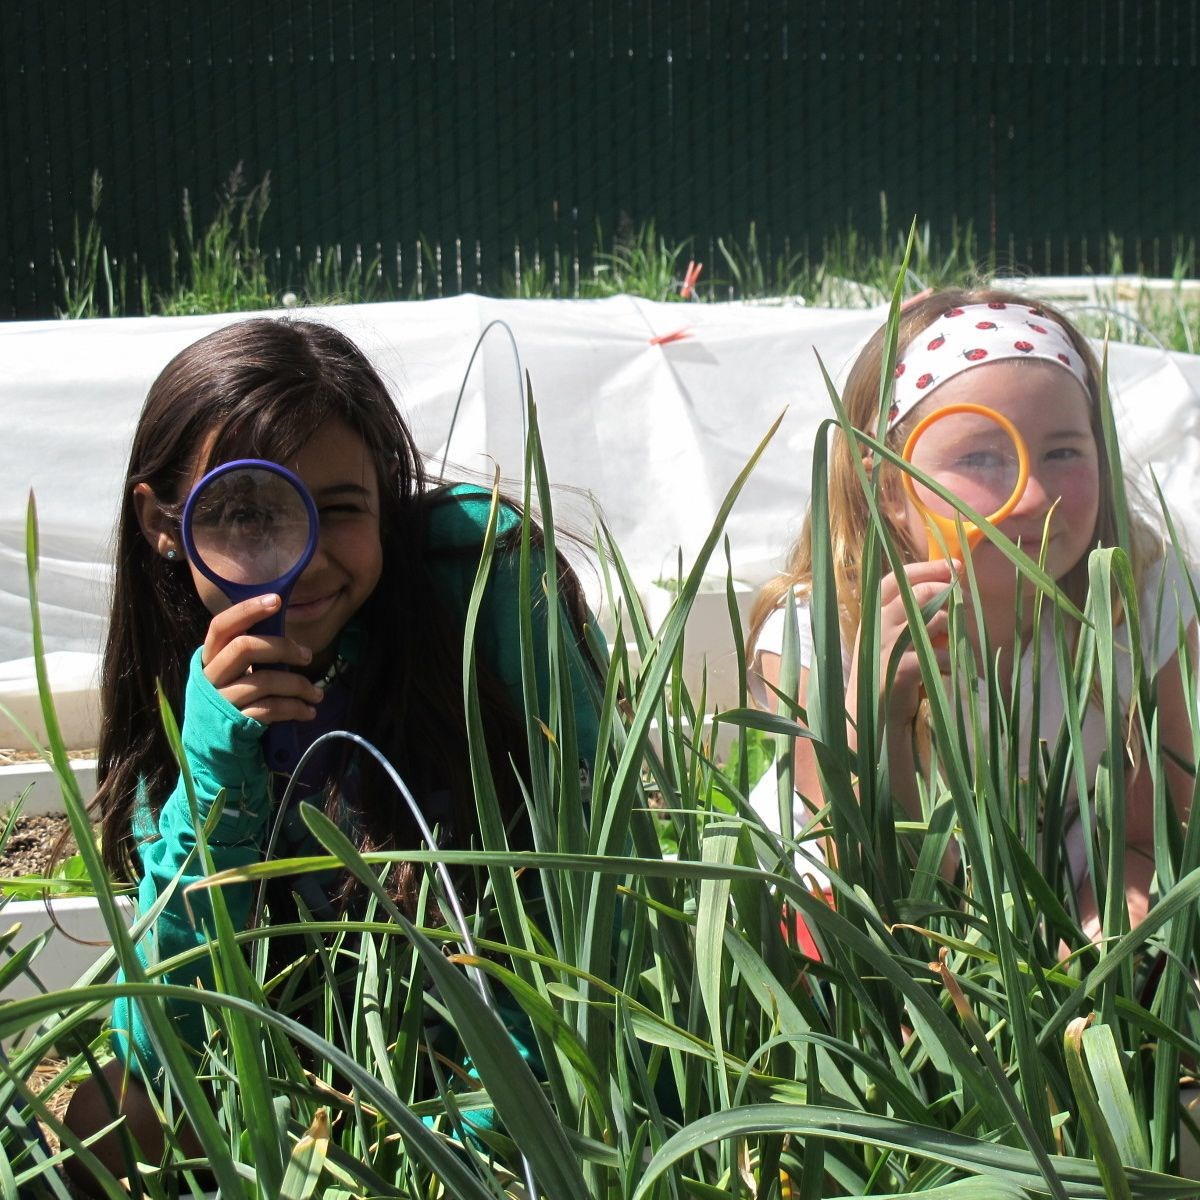 Outdoor - Girls with Magnifying Glasses.jpg